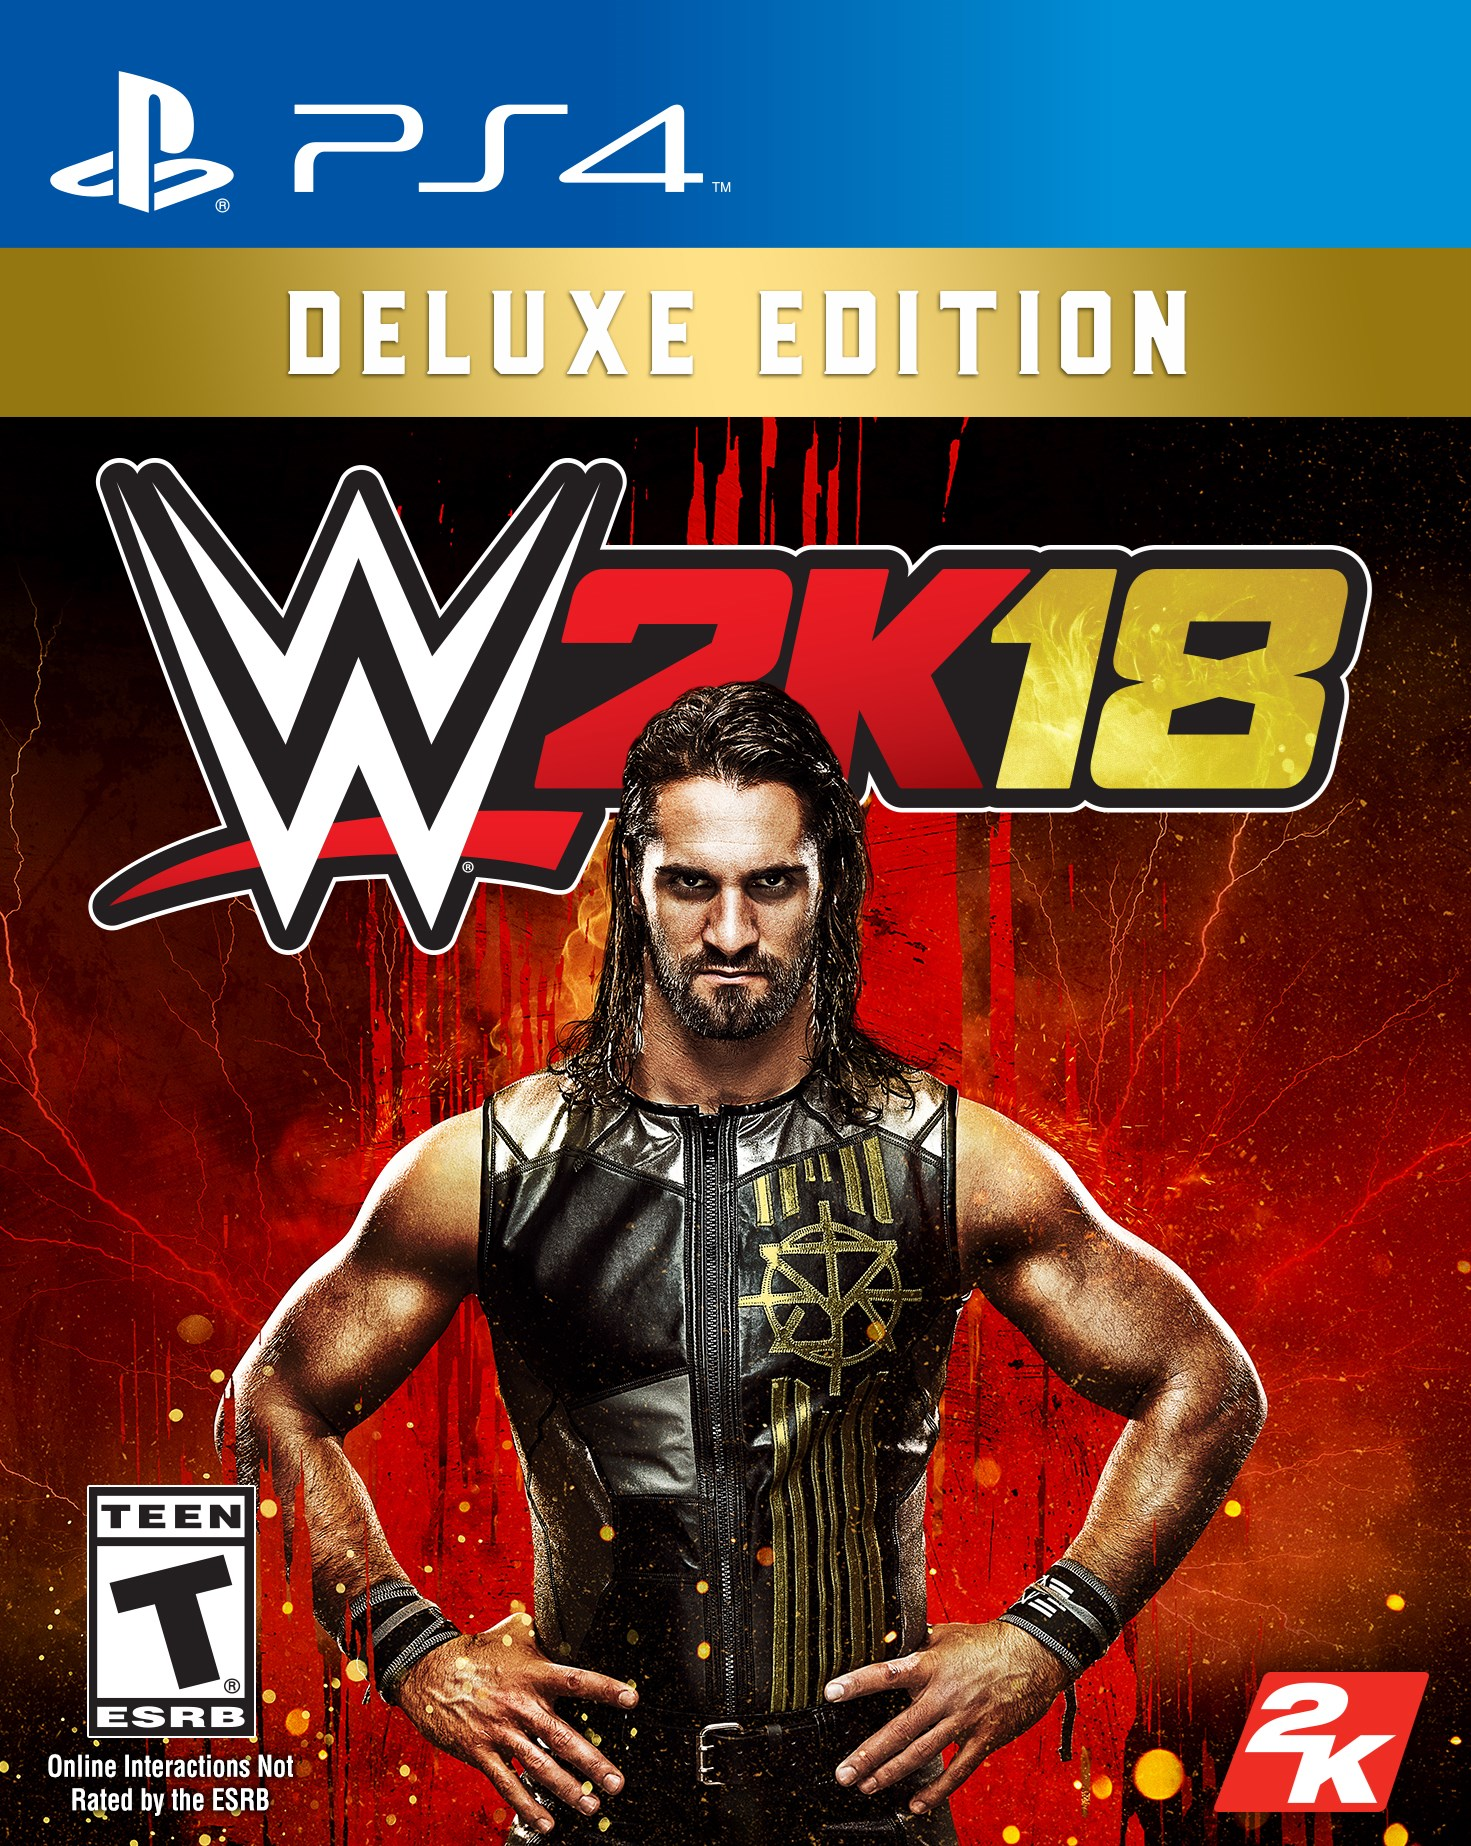 WWE 2K18 Deluxe Edition, 2K, PlayStation 4, 710425570056 by Visual Concepts